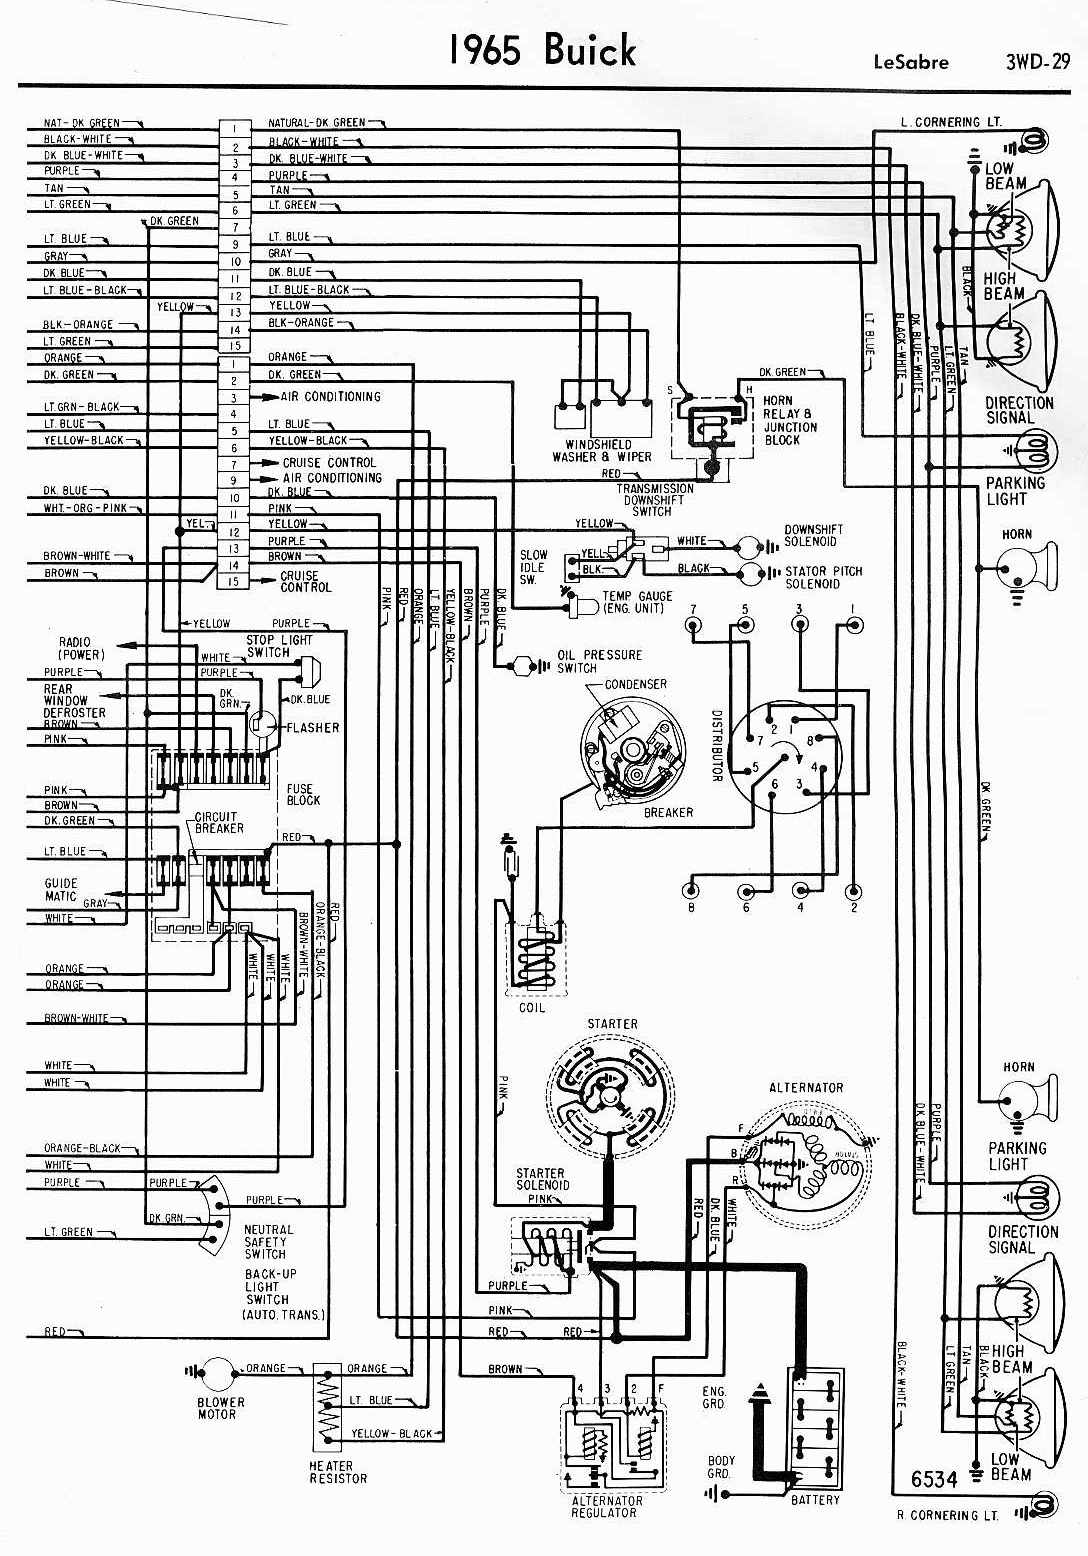 hight resolution of 1990 buick lesabre wiring diagram trusted wiring diagram rh 12 nl schoenheitsbrieftaube de 2000 buick lesabre heater location 2001 buick lesabre wiring